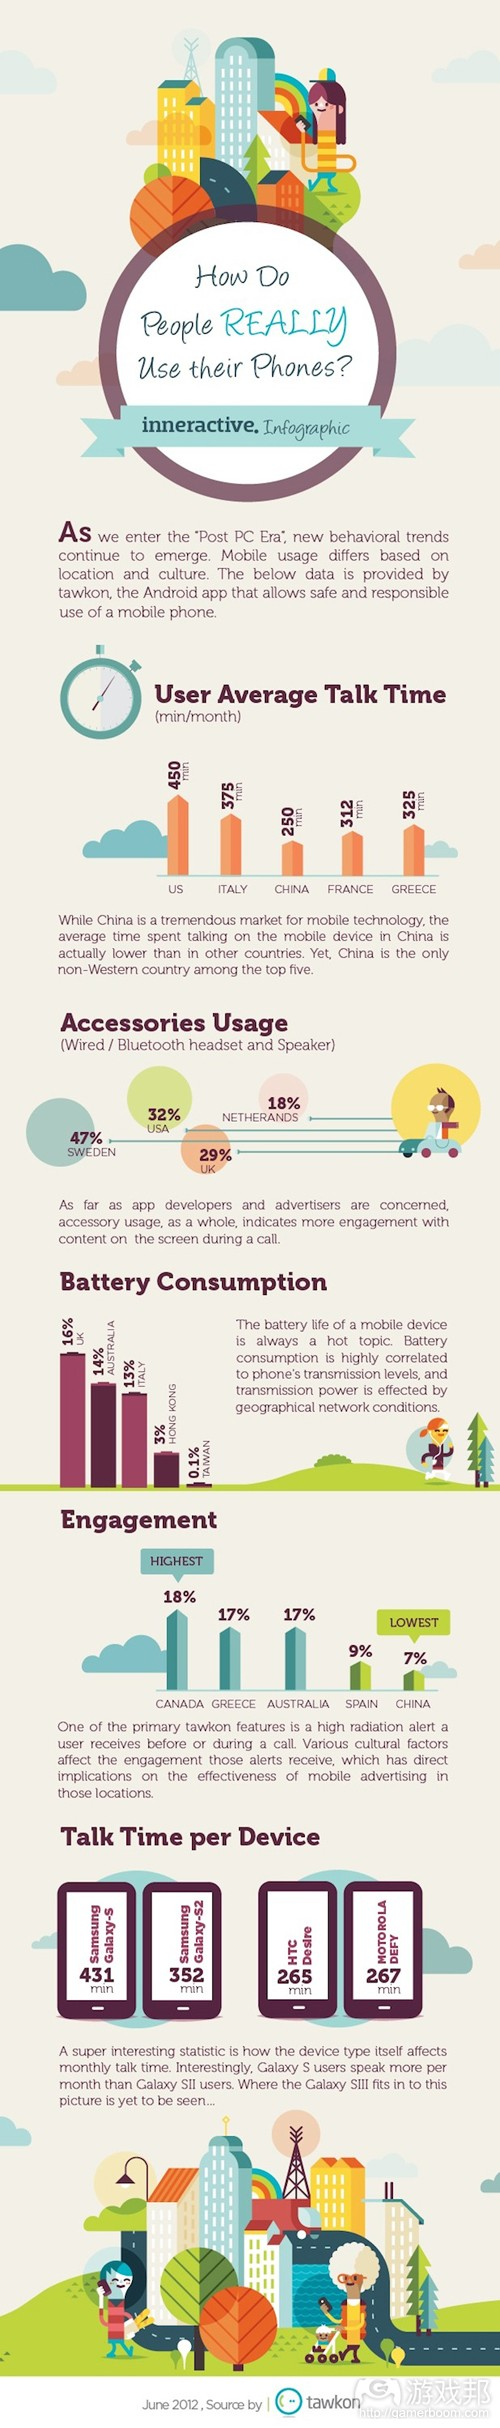 android_use_infographic(from tawkon)